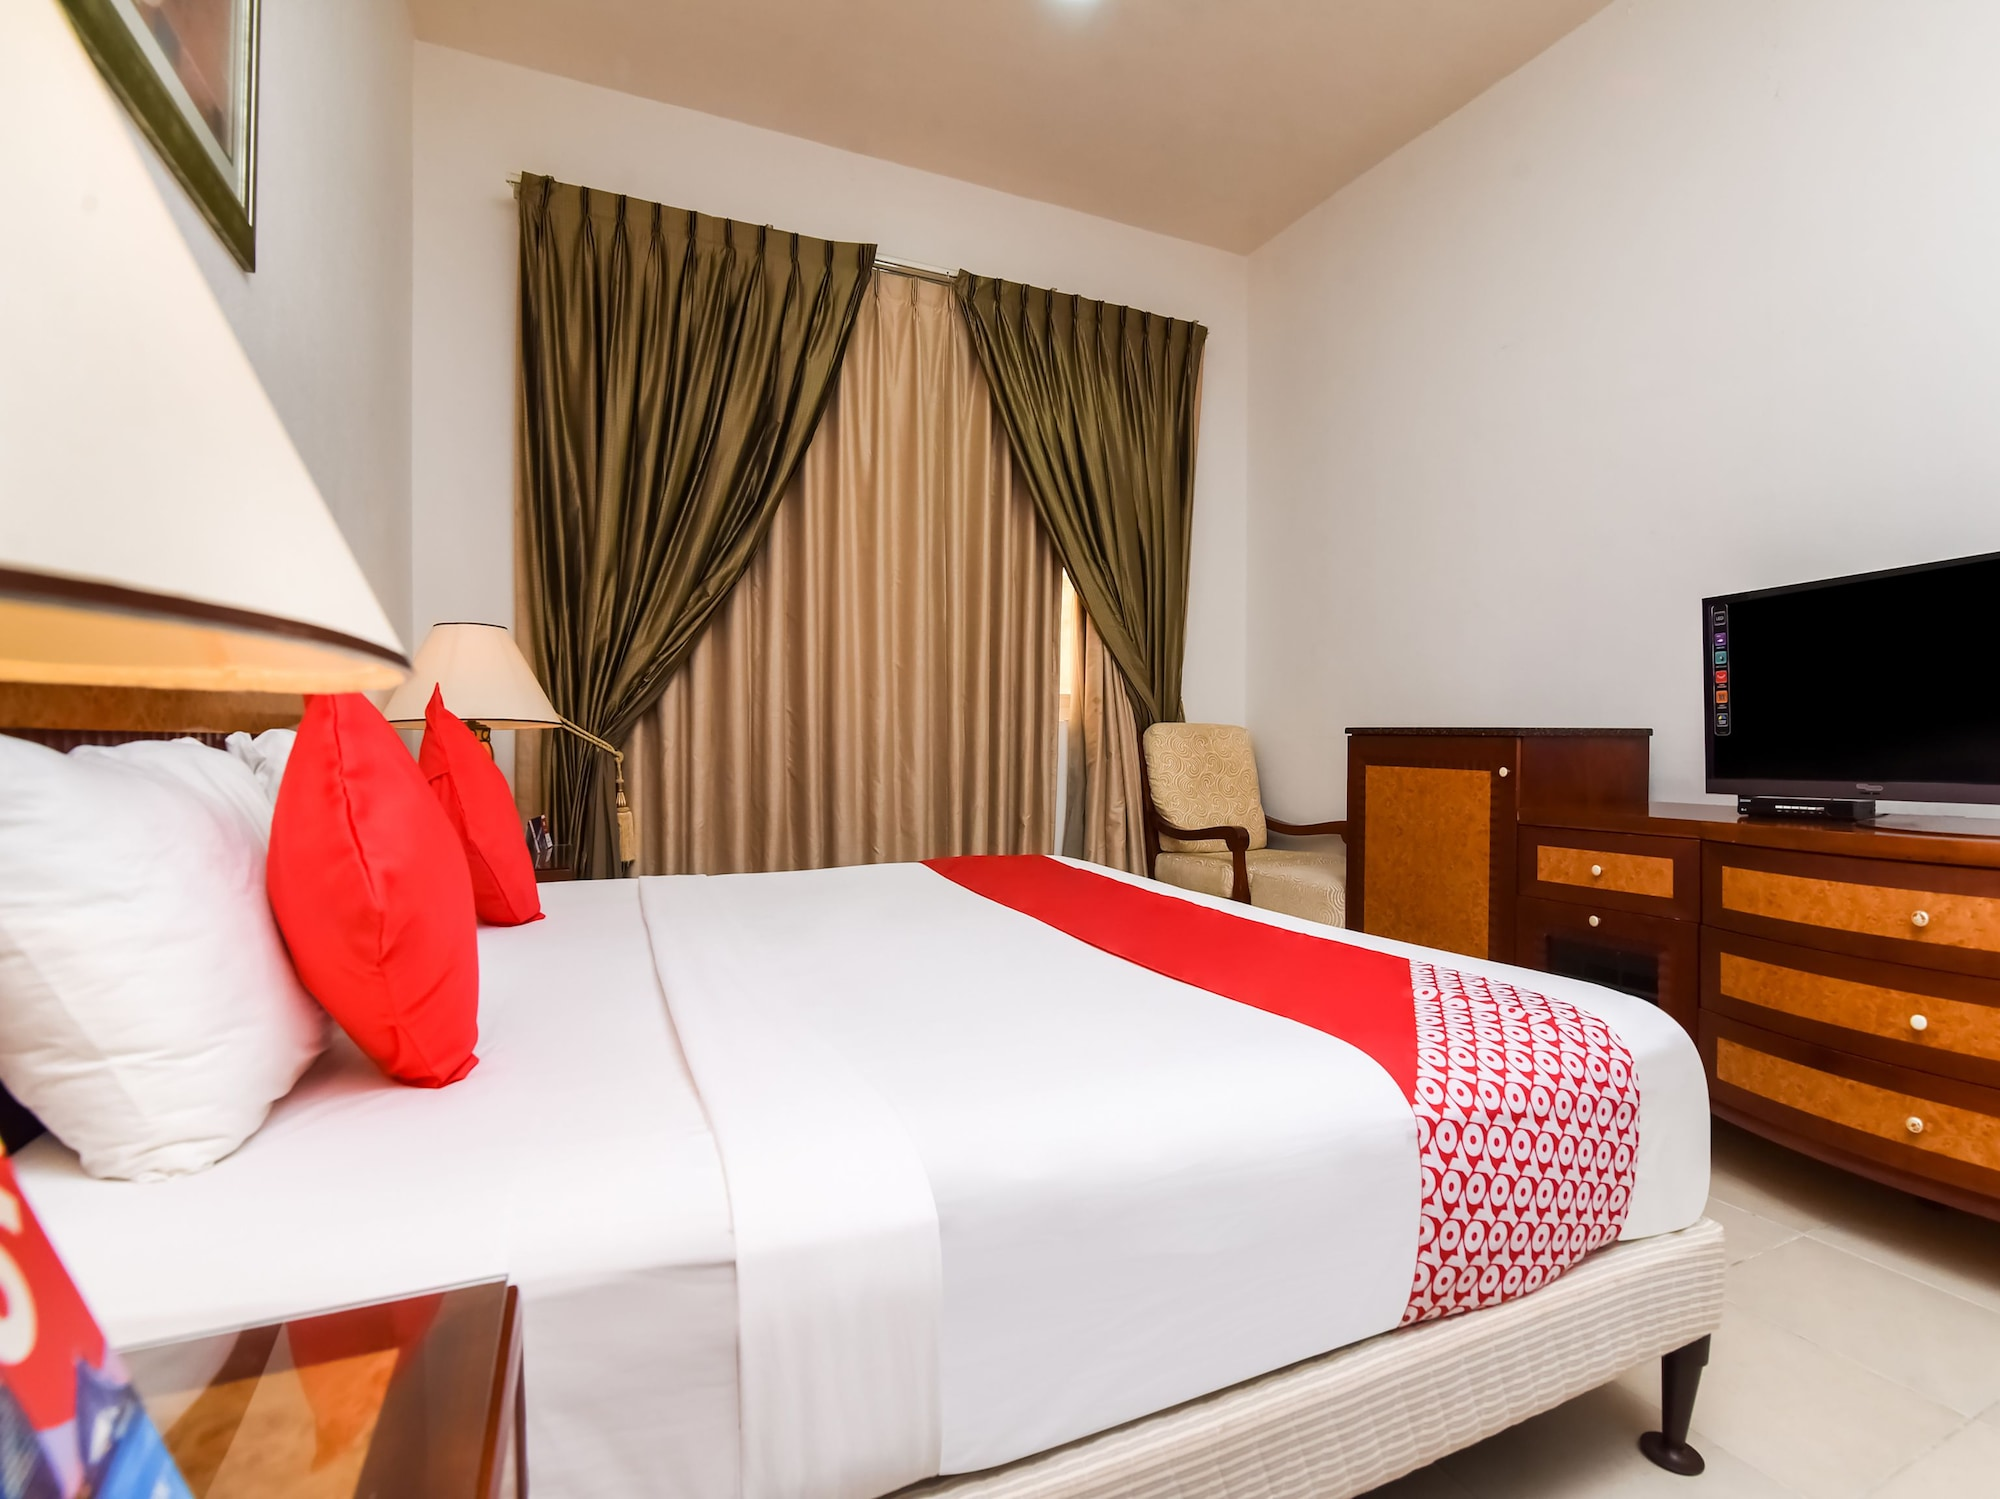 OYO 247 Host Palace hotel apartment,